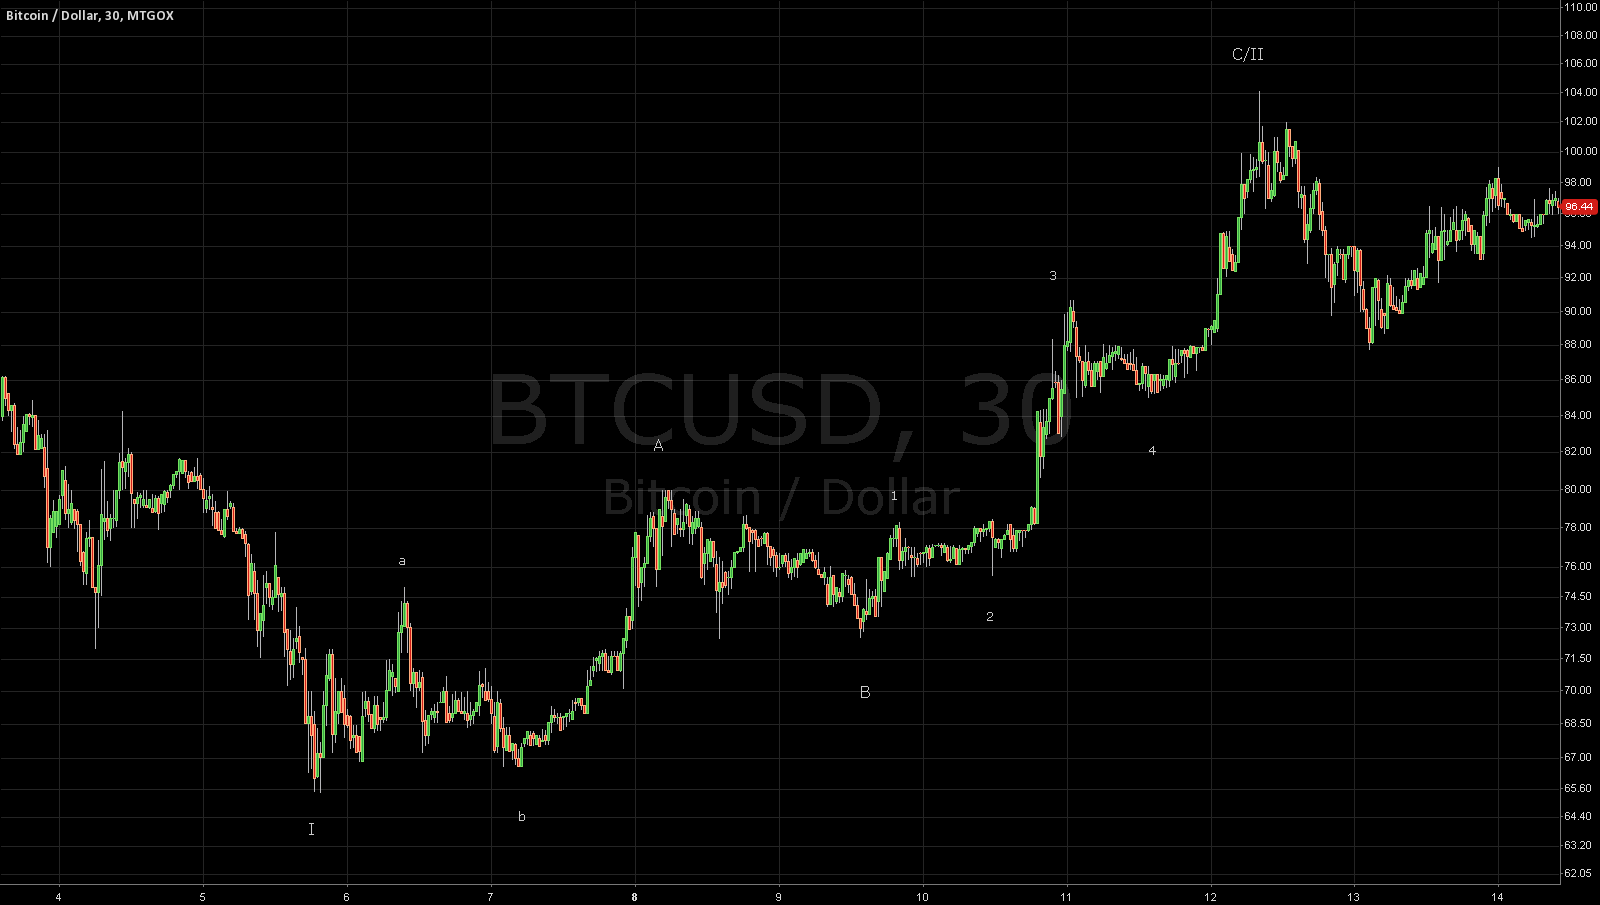 My take on the Bitcoin correction